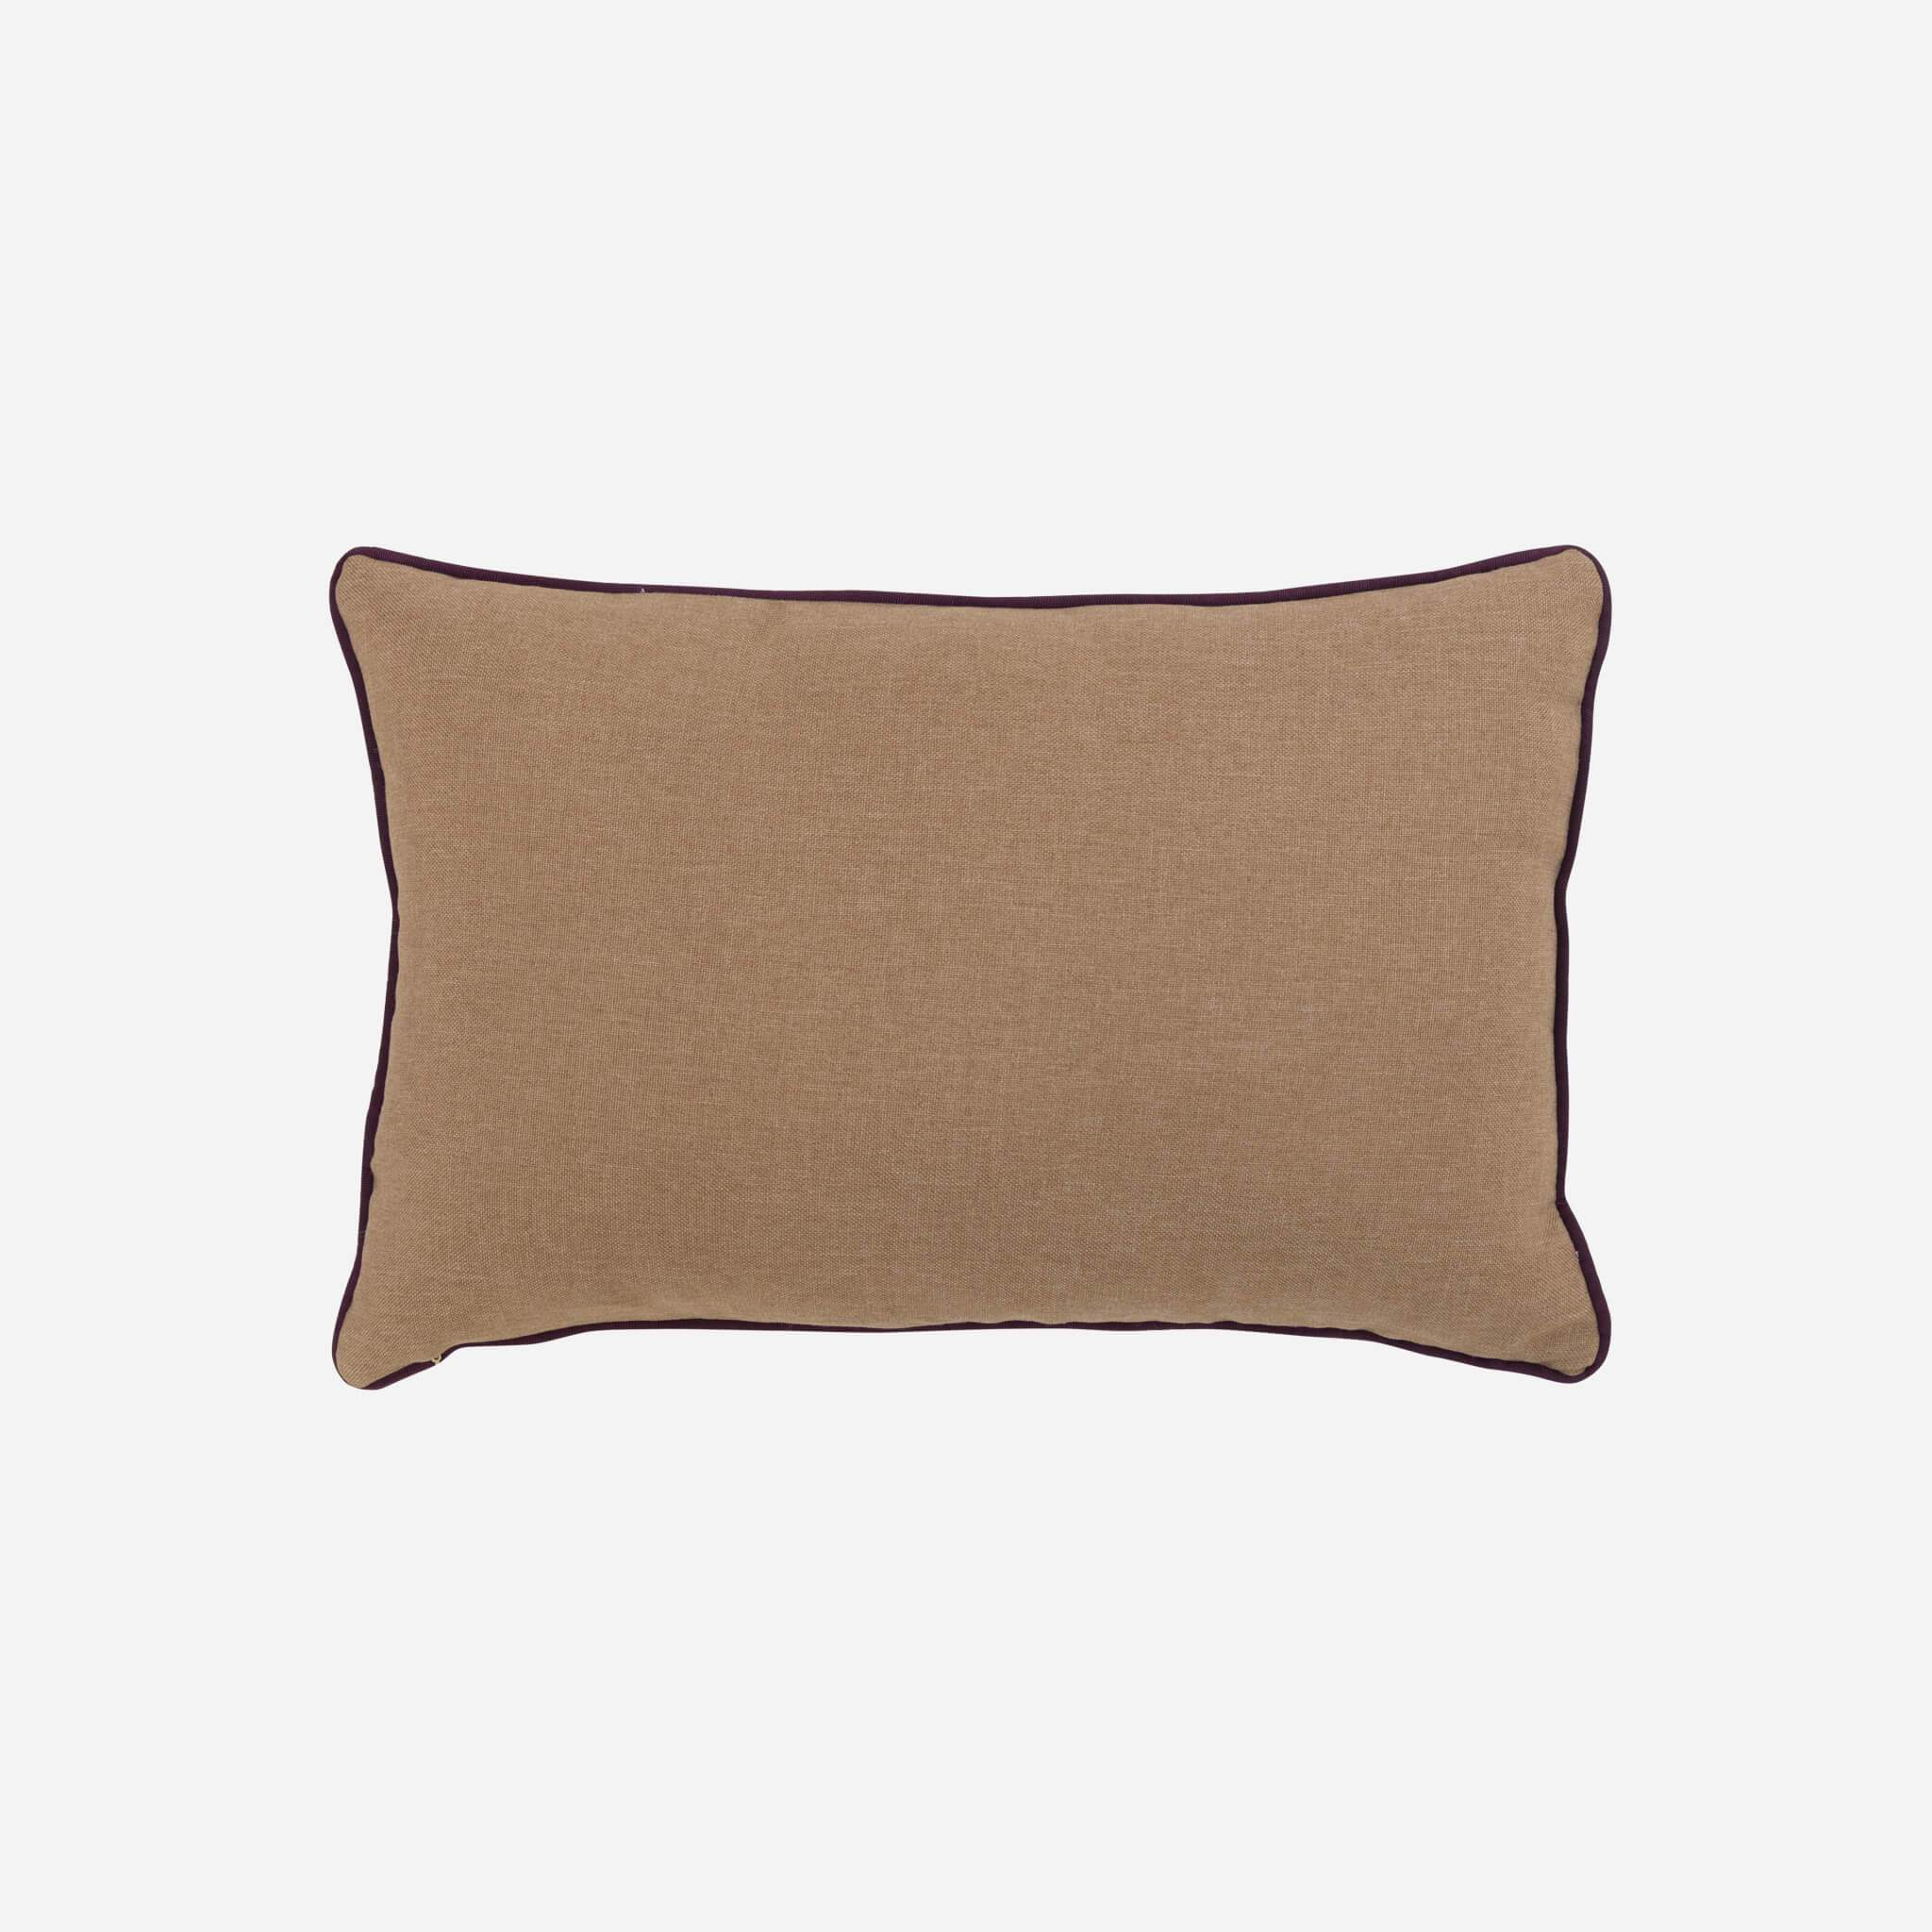 Delilah Boudoir Pillow